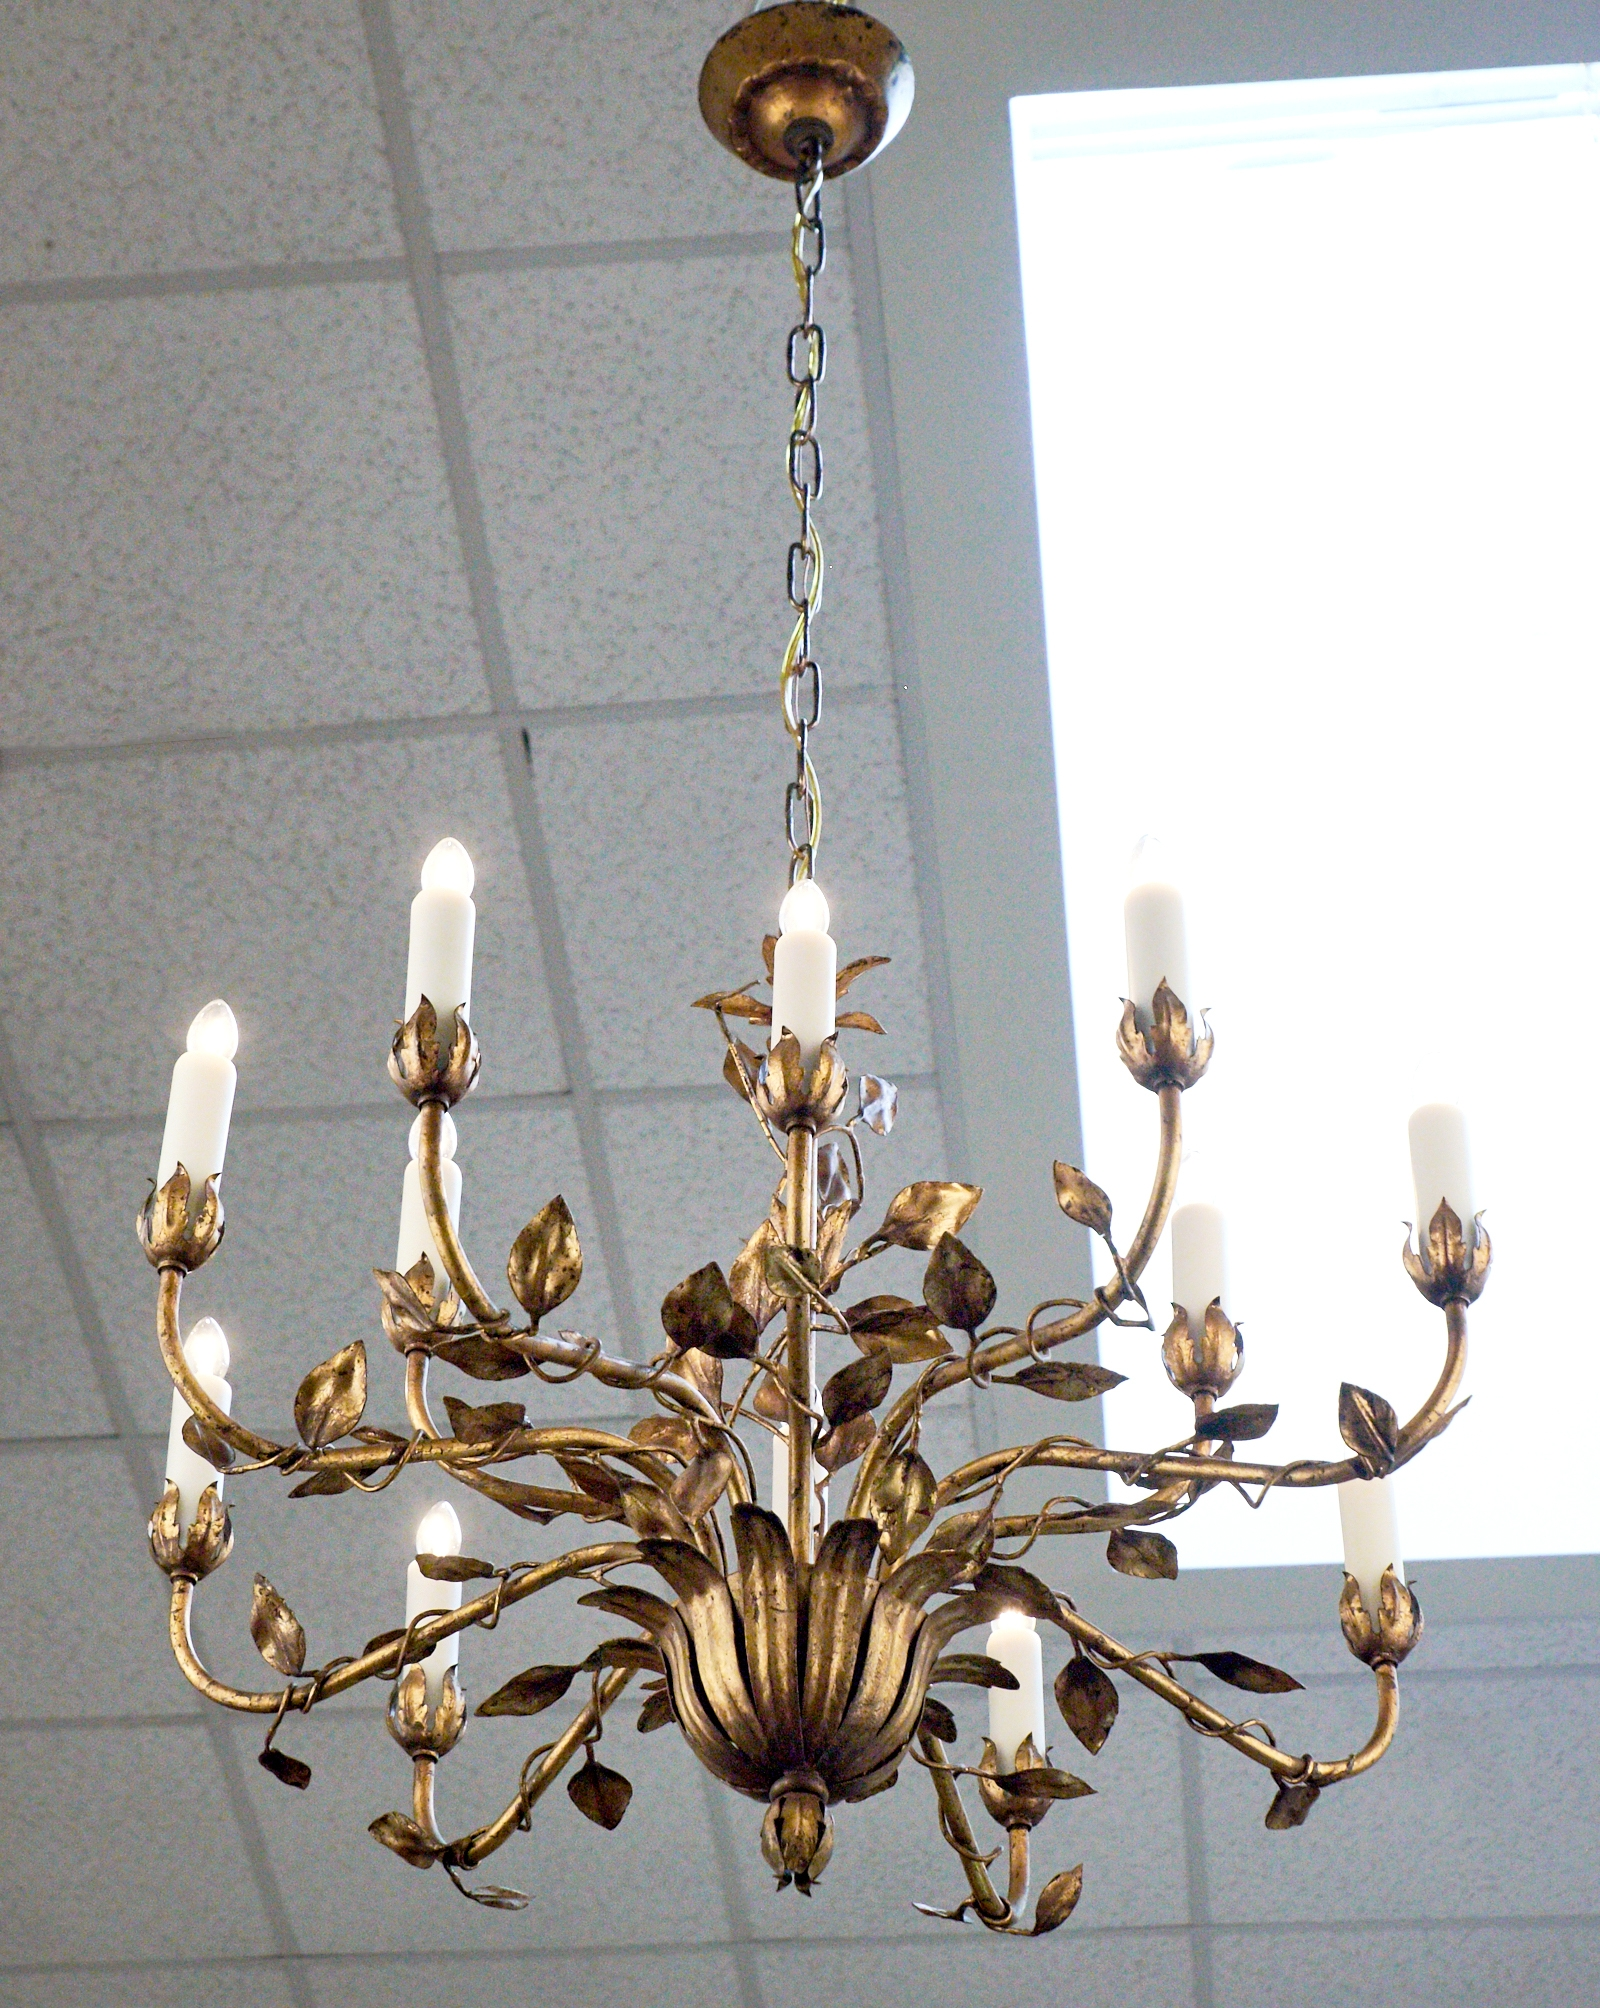 Vintage Gold Leaf Tole Chandelier Jean Marc Fray Intended For Branched Chandelier (Image 8 of 15)